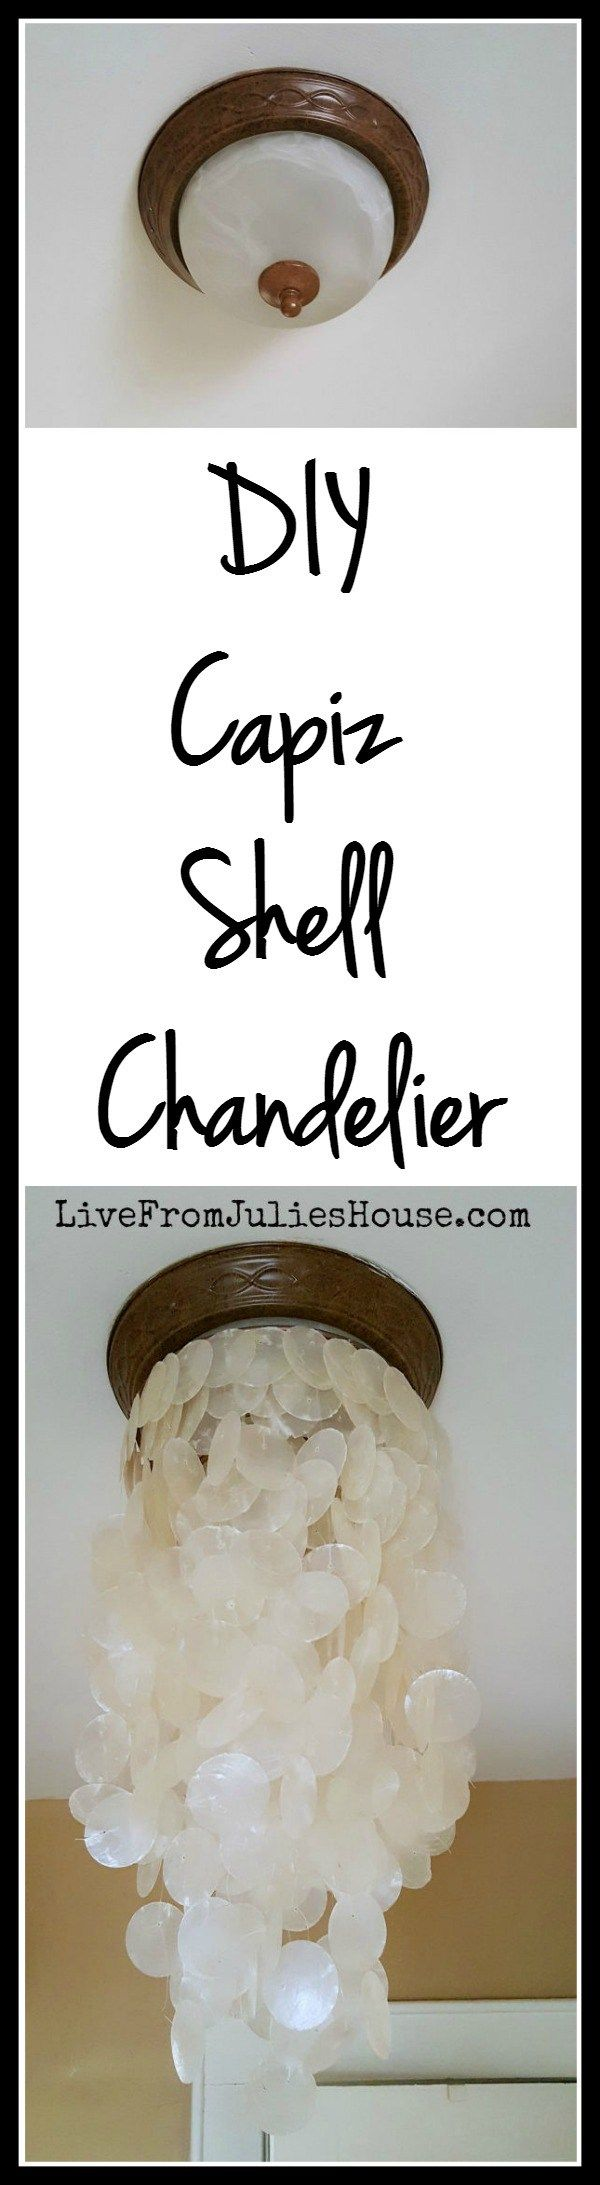 diy capiz shell chandelier - Capiz Shell Chandelier